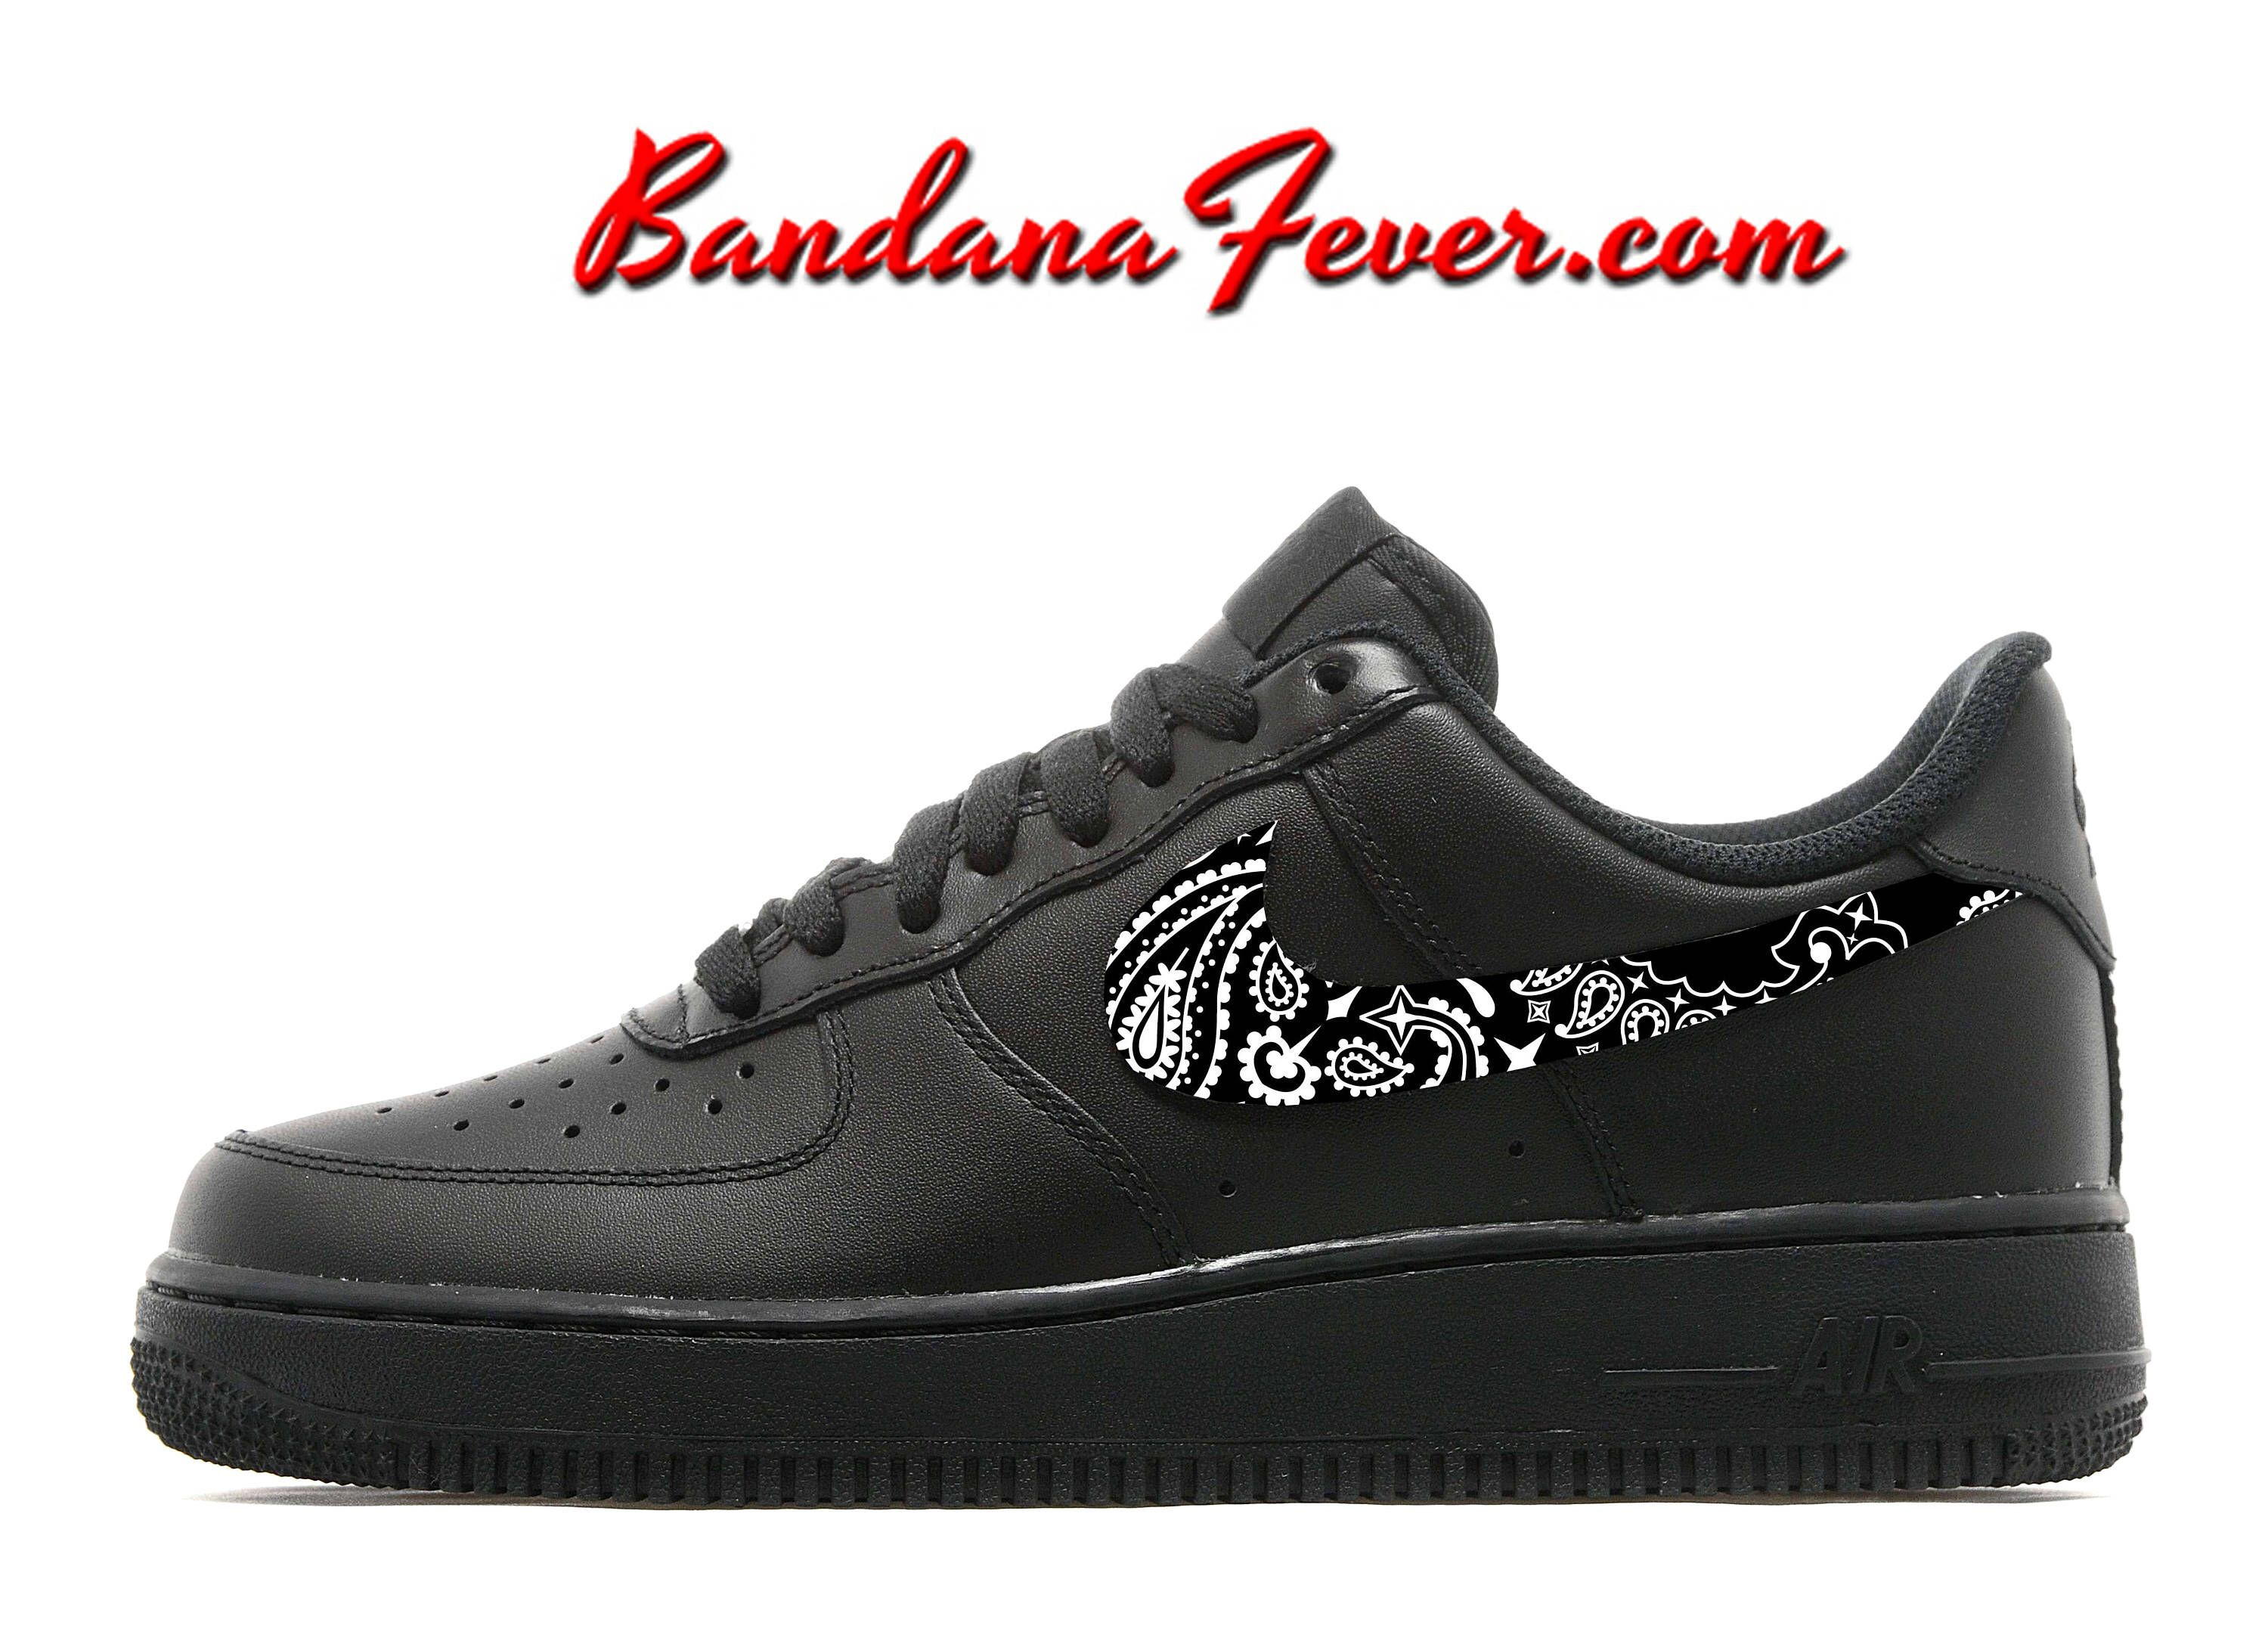 great fit 735a0 0dae5 Custom Black Bandana Nike Air Force 1 Shoes Black Low, FREE SHIPPING,   paisley,  bandanna,  Nike  running,  nikeair,  Shoes by Bandana Fever by  ...